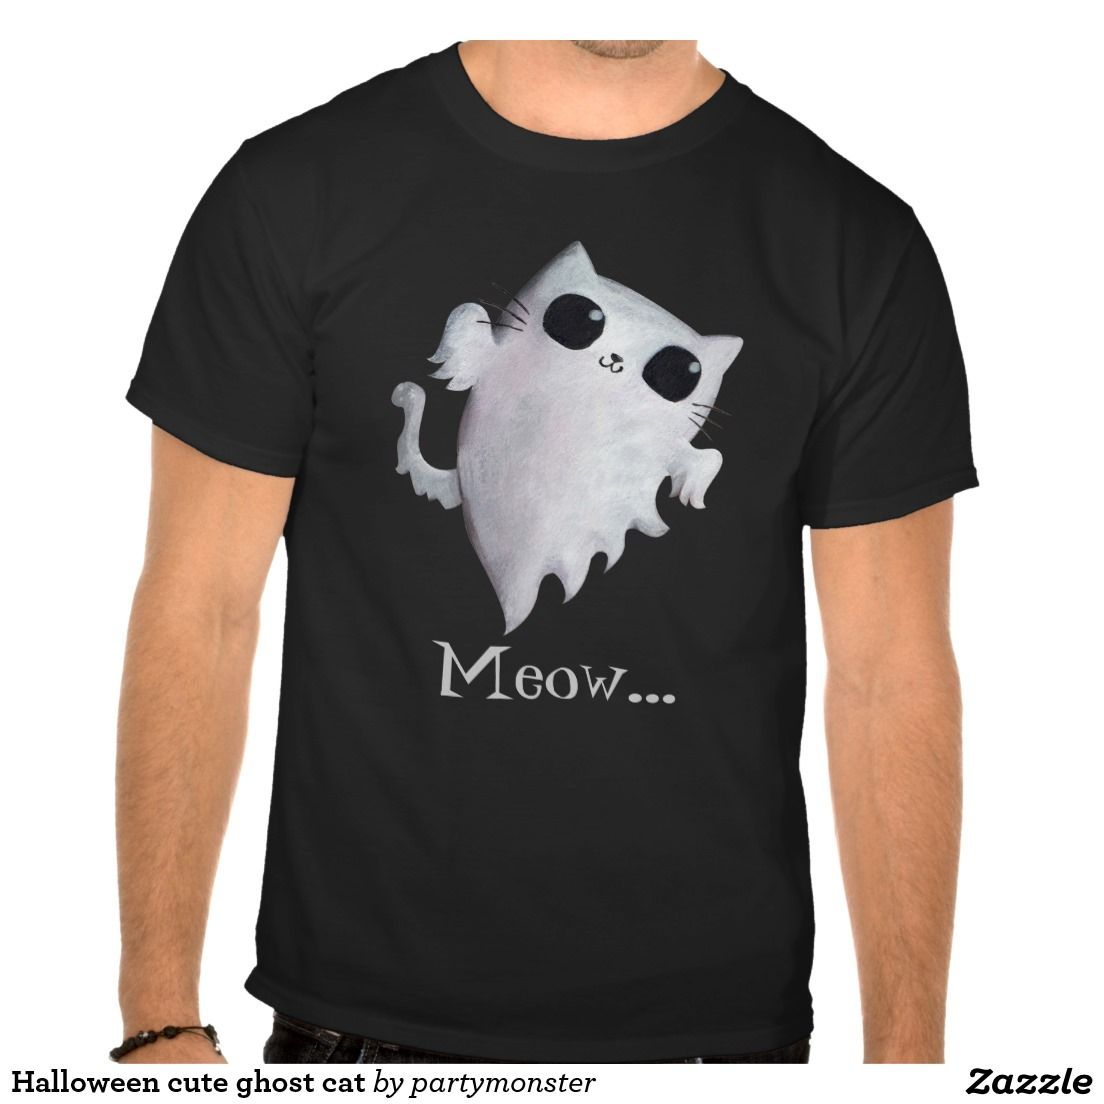 Halloween cute ghost cat tees